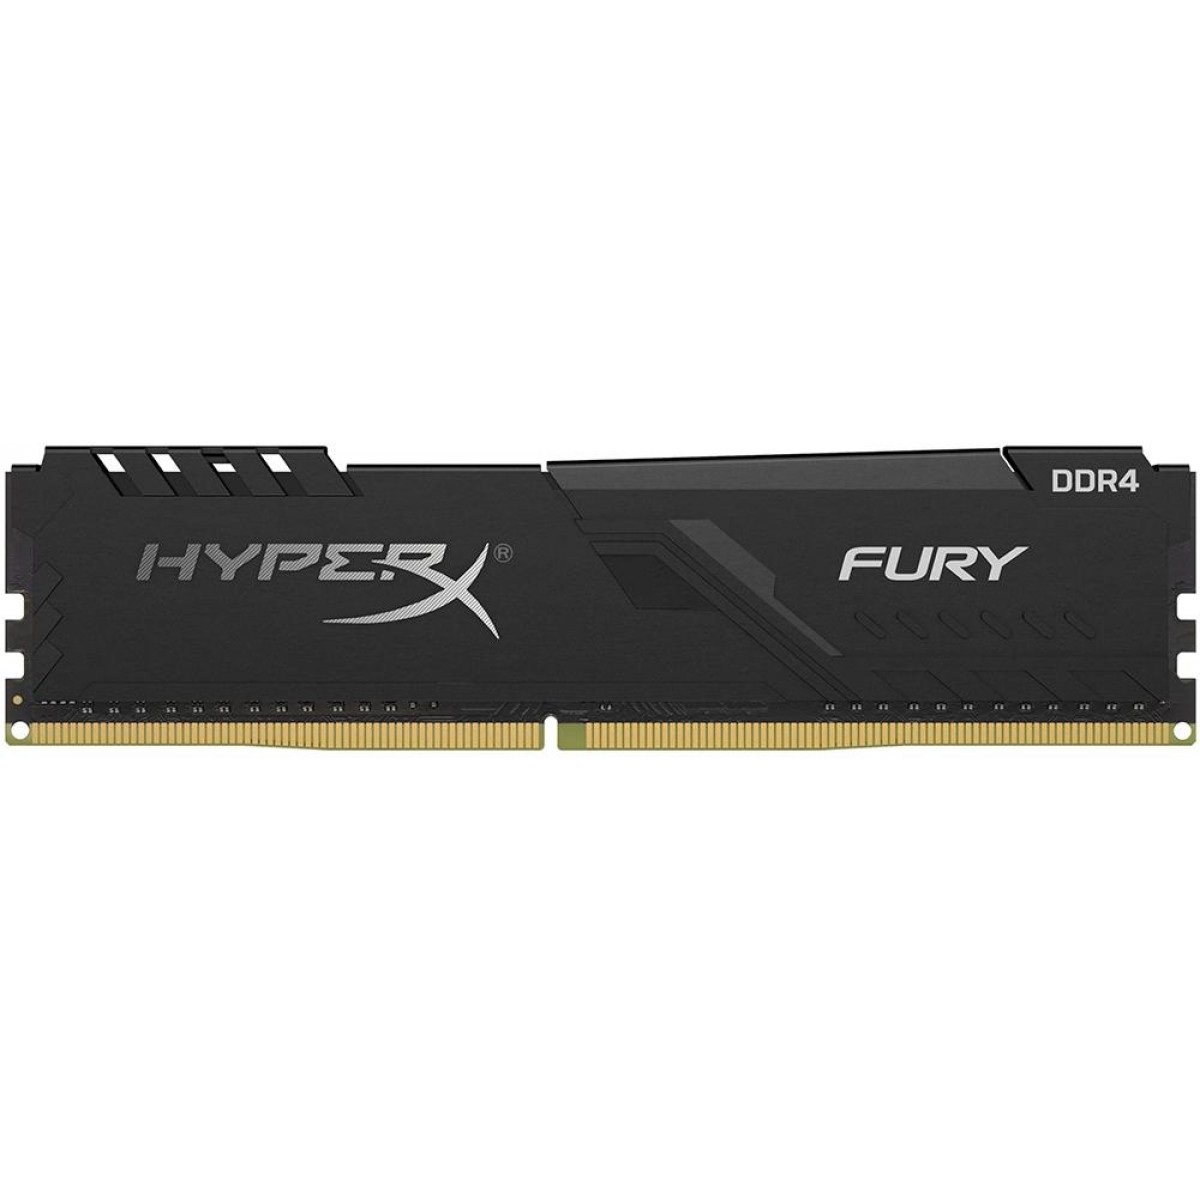 Memória DDR4 Kingston HyperX Fury, 8GB 3600MHz, Black, HX436C17FB3/8